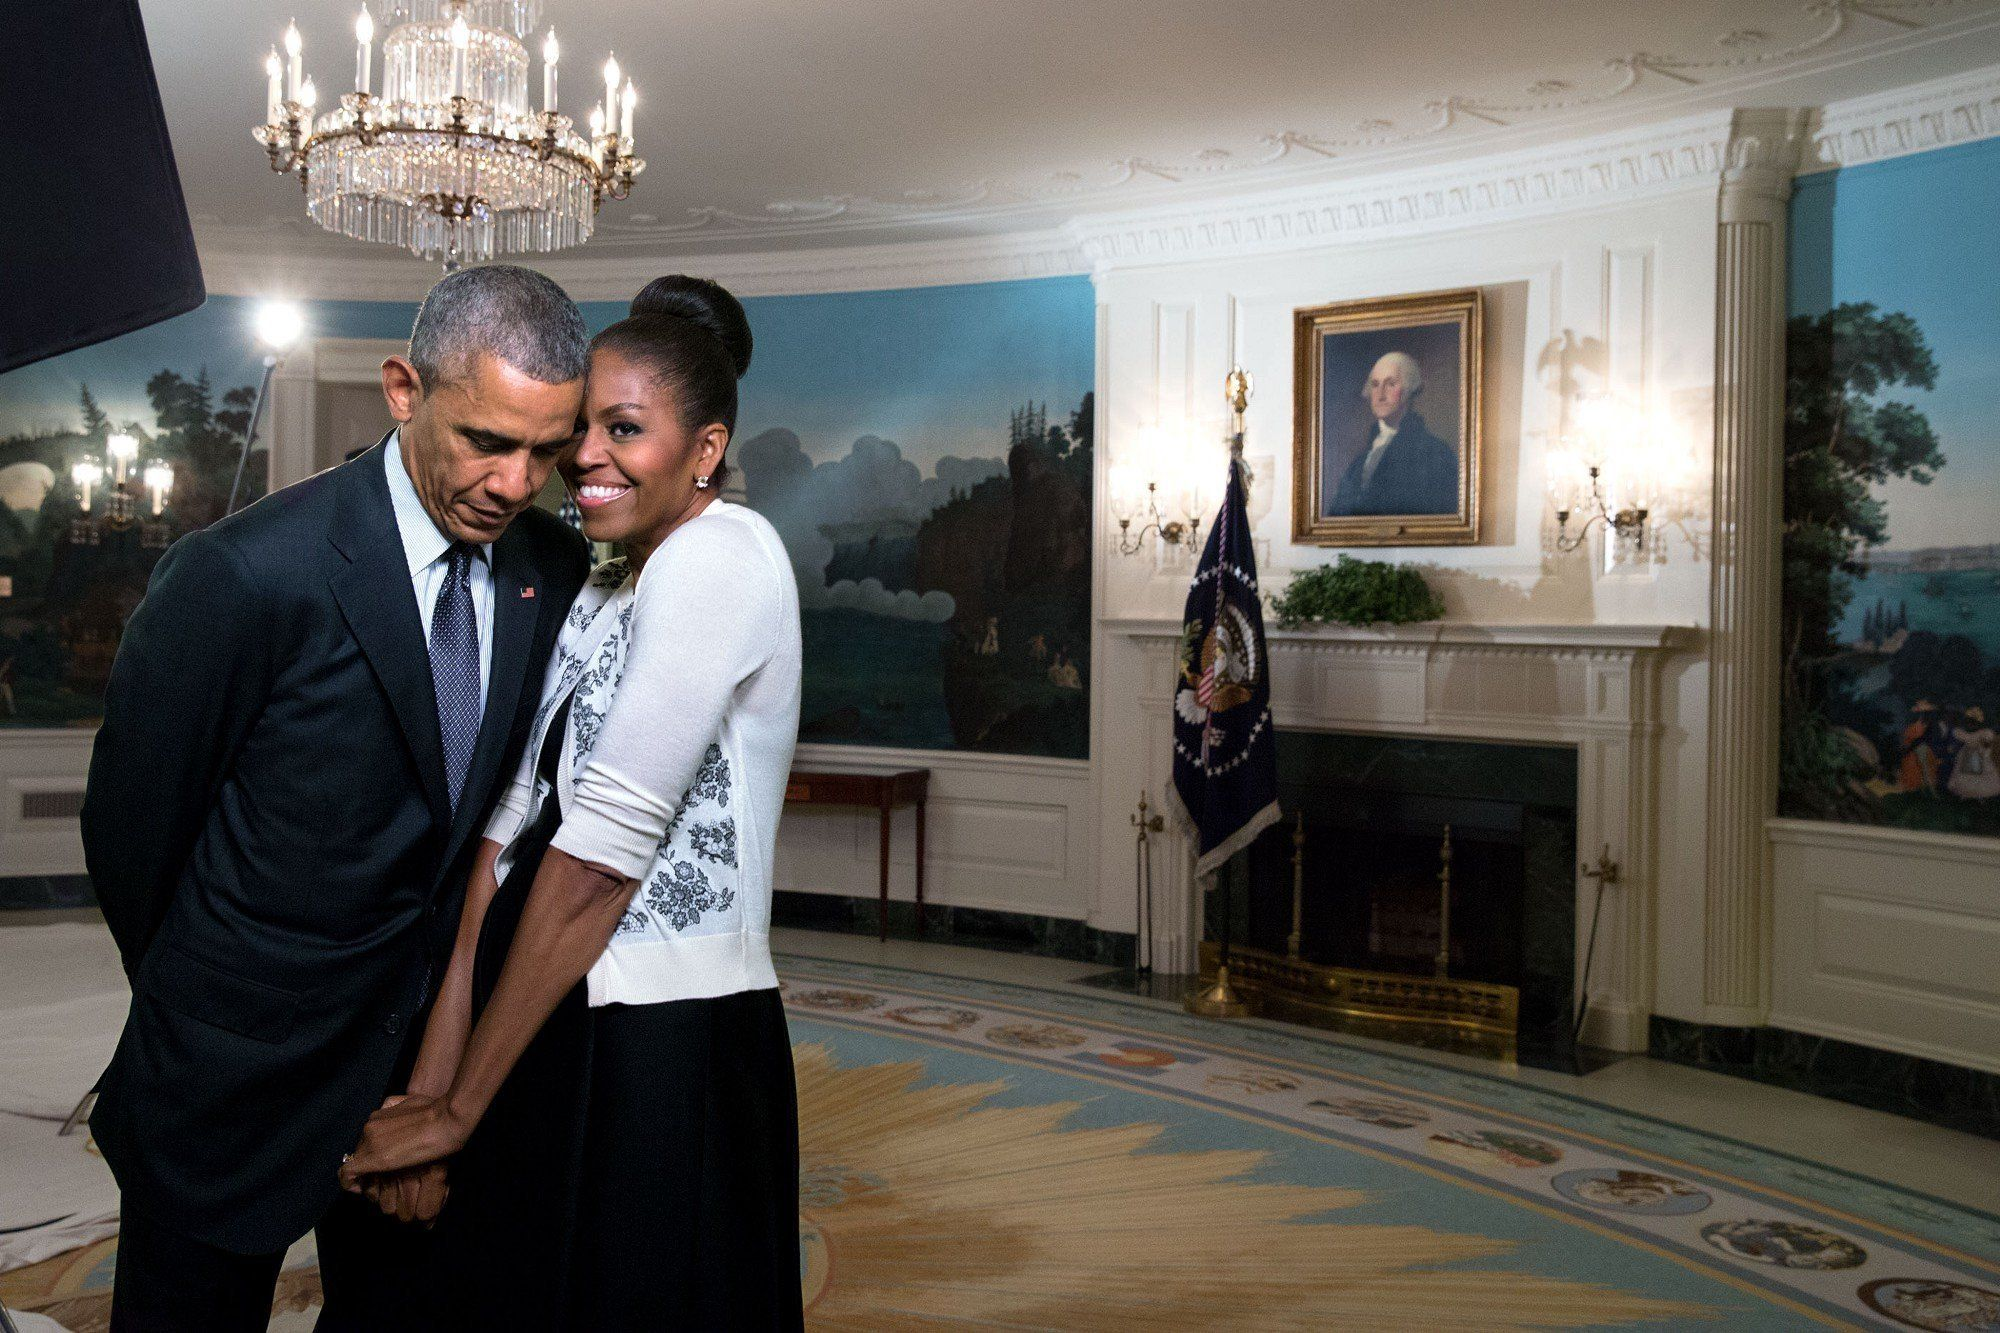 Obama Photographer Reminds The Trumps How Couples Hold